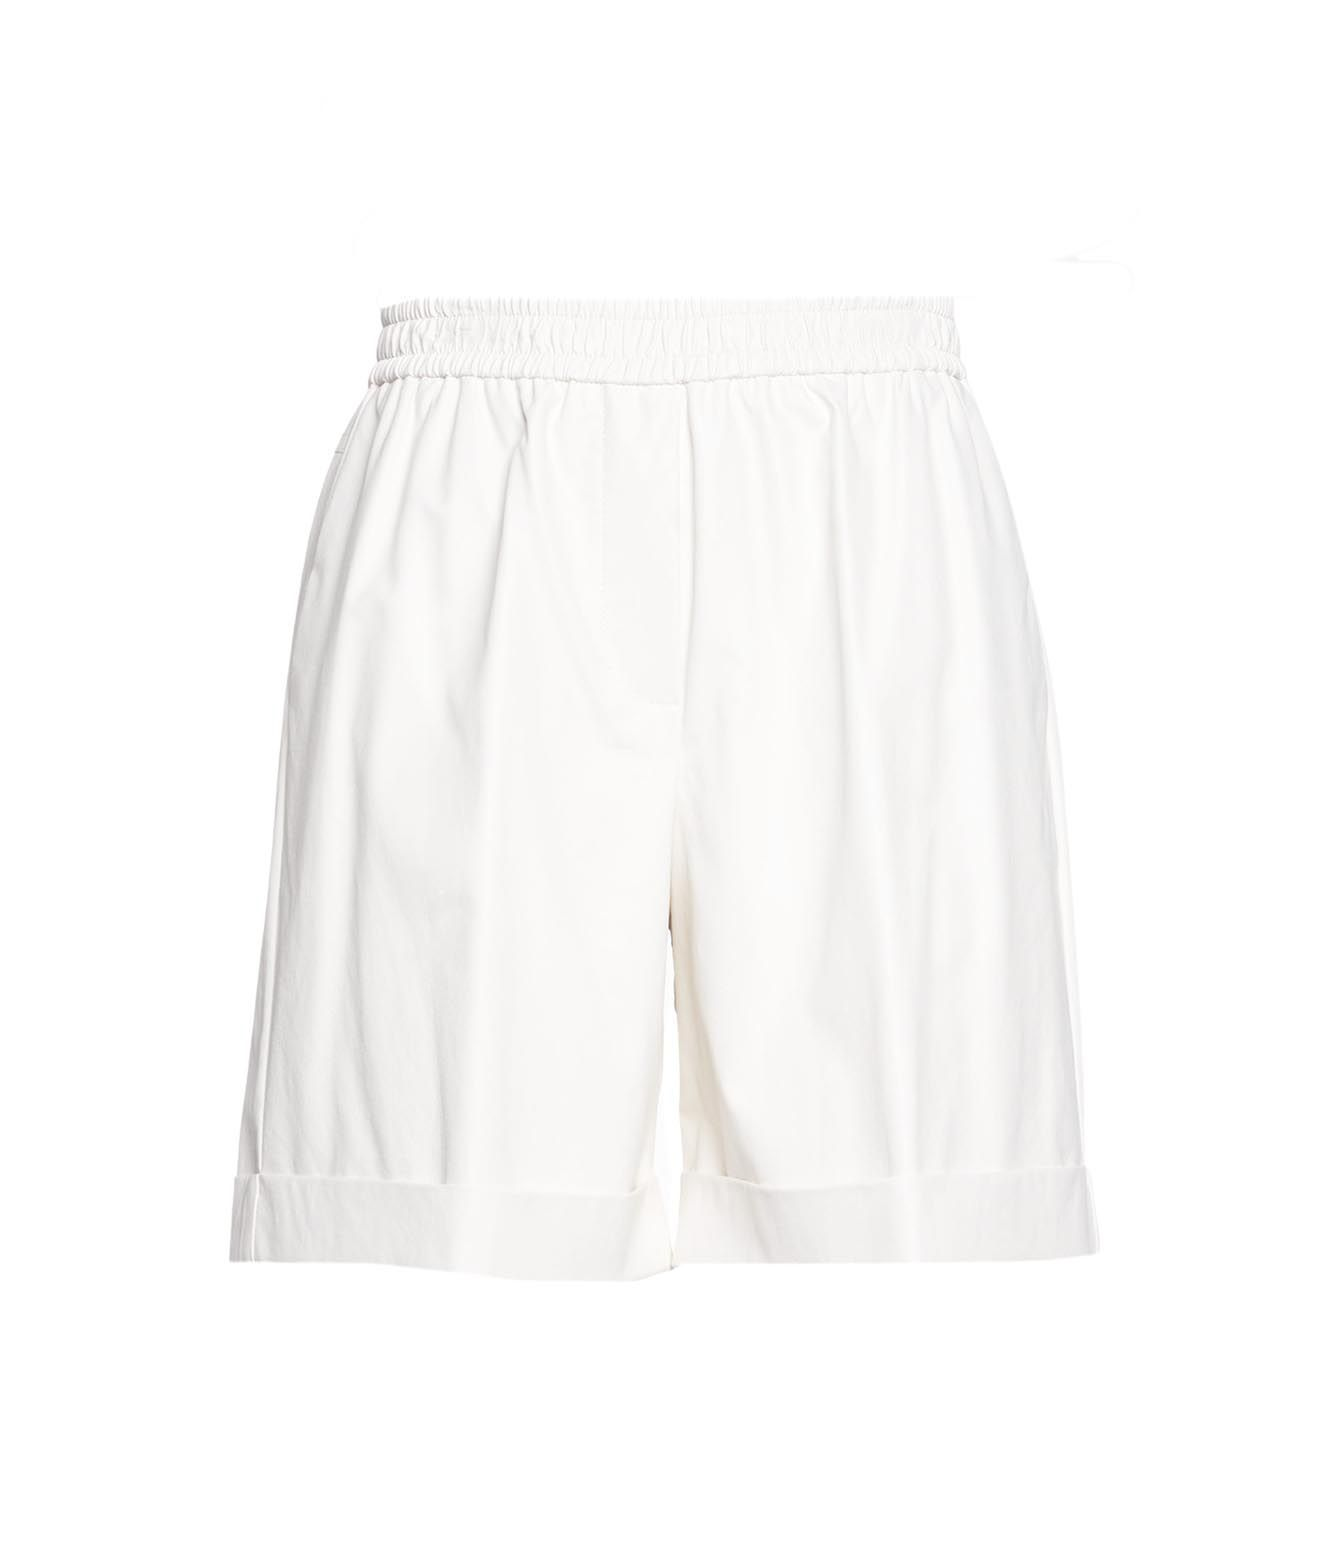 Nude NUDE WOMEN'S 11035591101 WHITE OTHER MATERIALS SHORTS